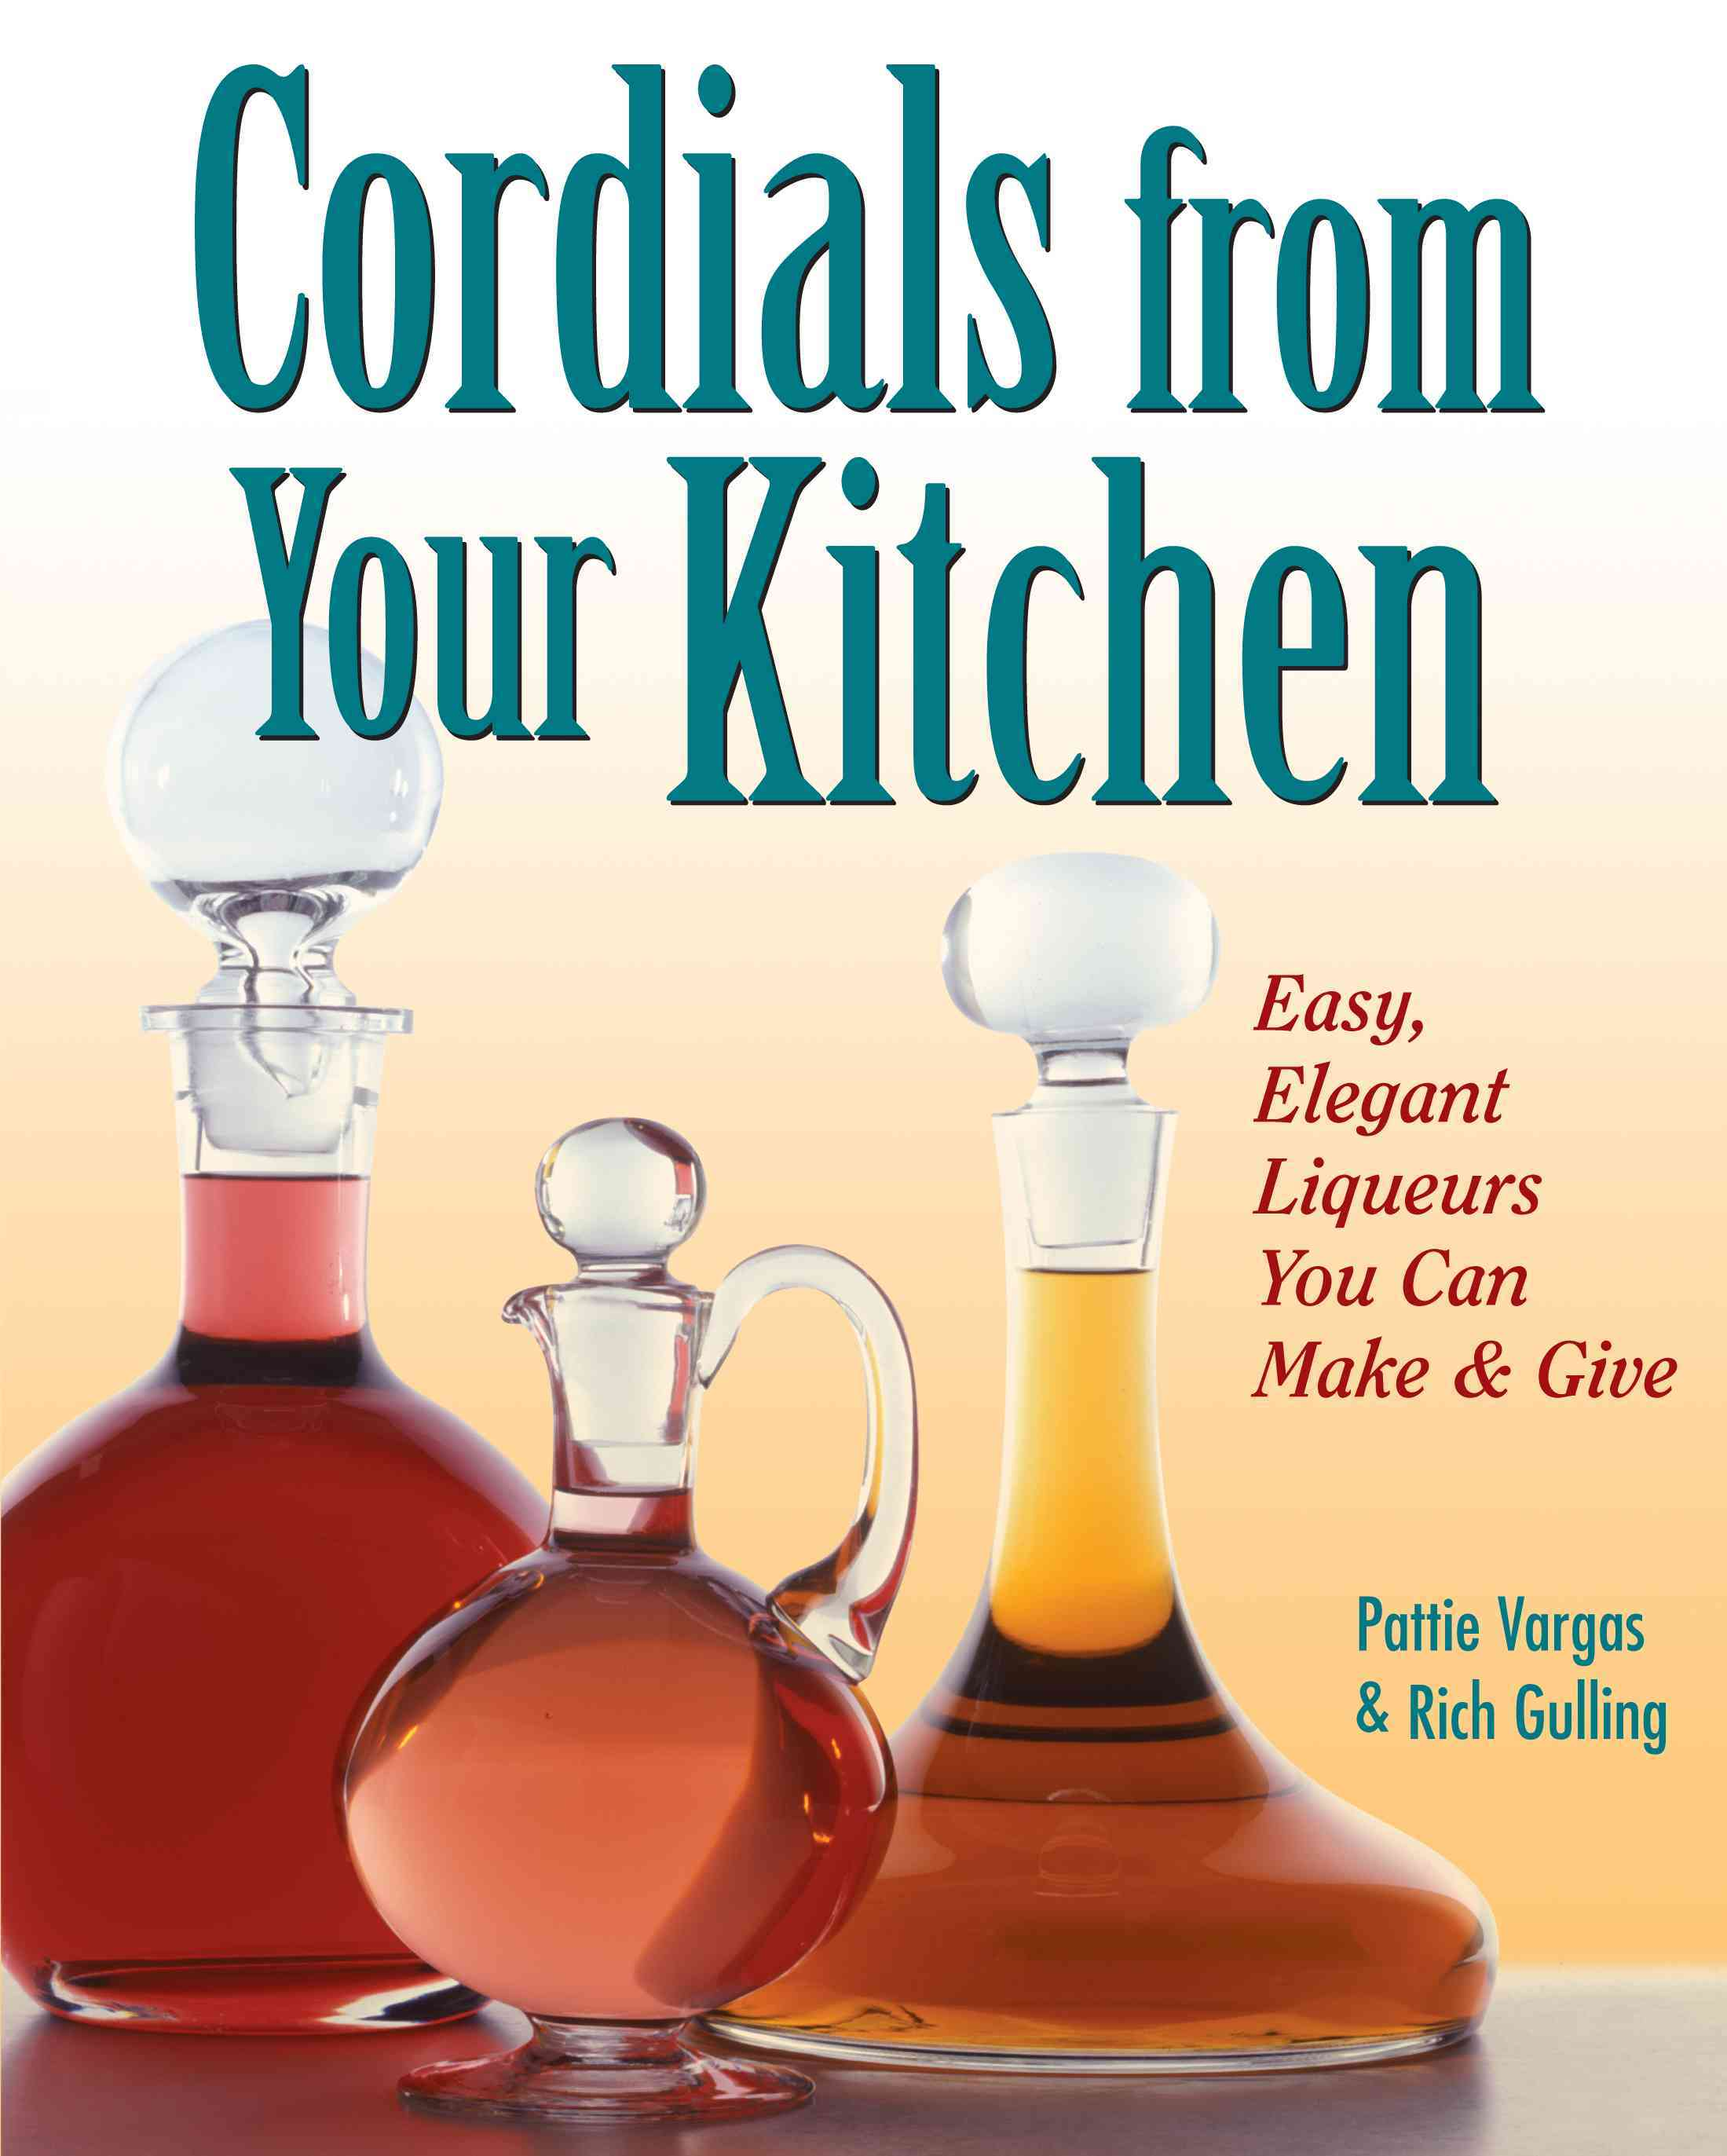 Cordials from Your Kitchen: Easy, Elegant Liqueurs You Can Make & Give (Paperback)